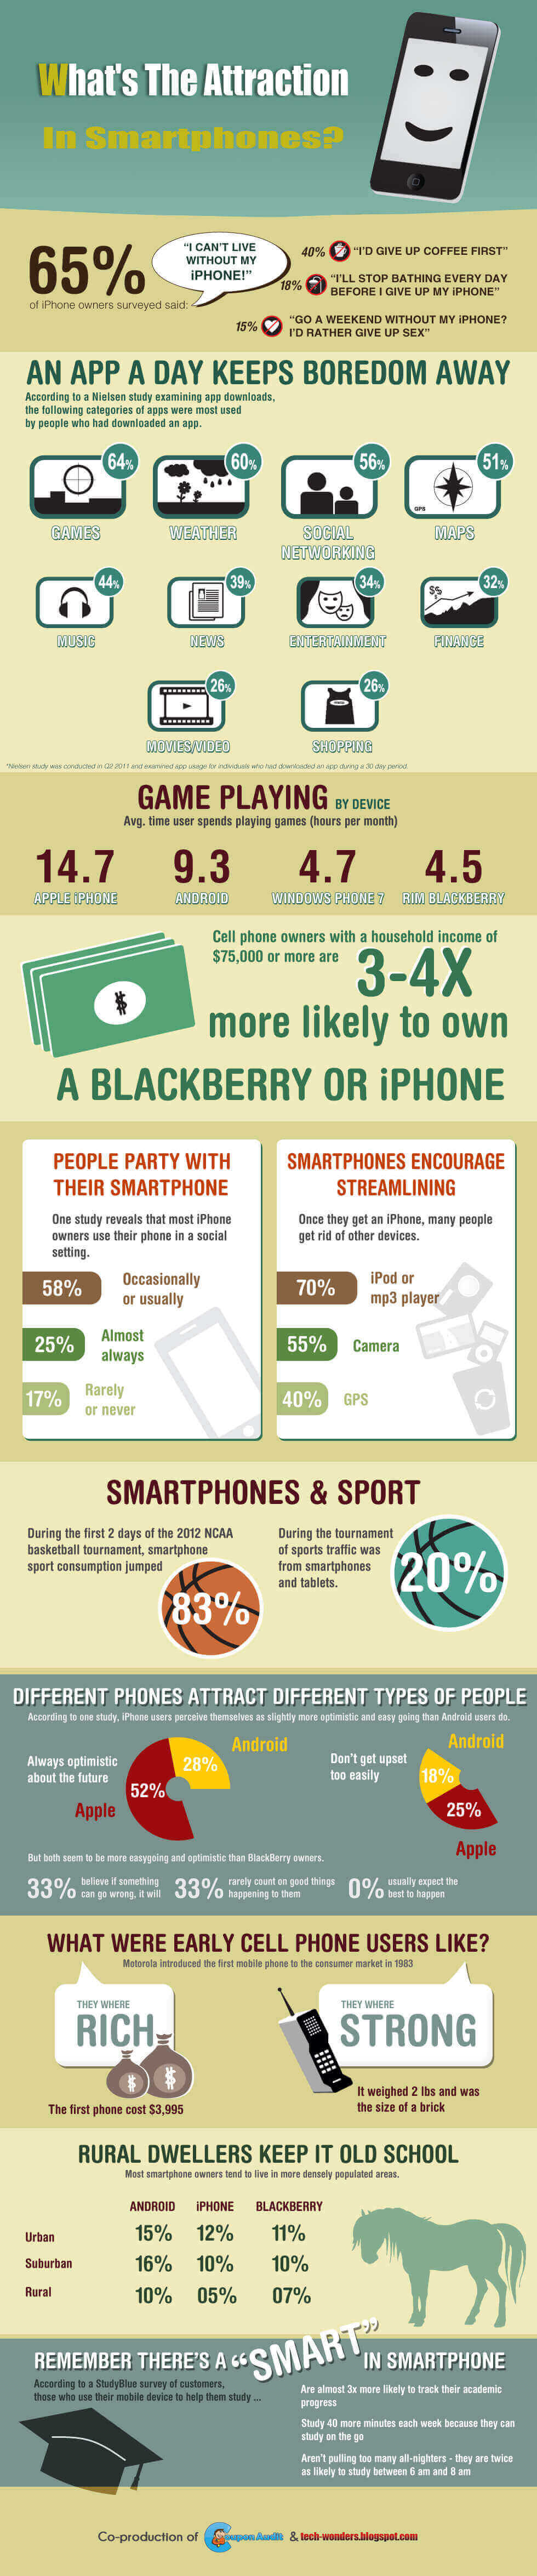 Infographic Showing What's The Attraction In Smartphones?